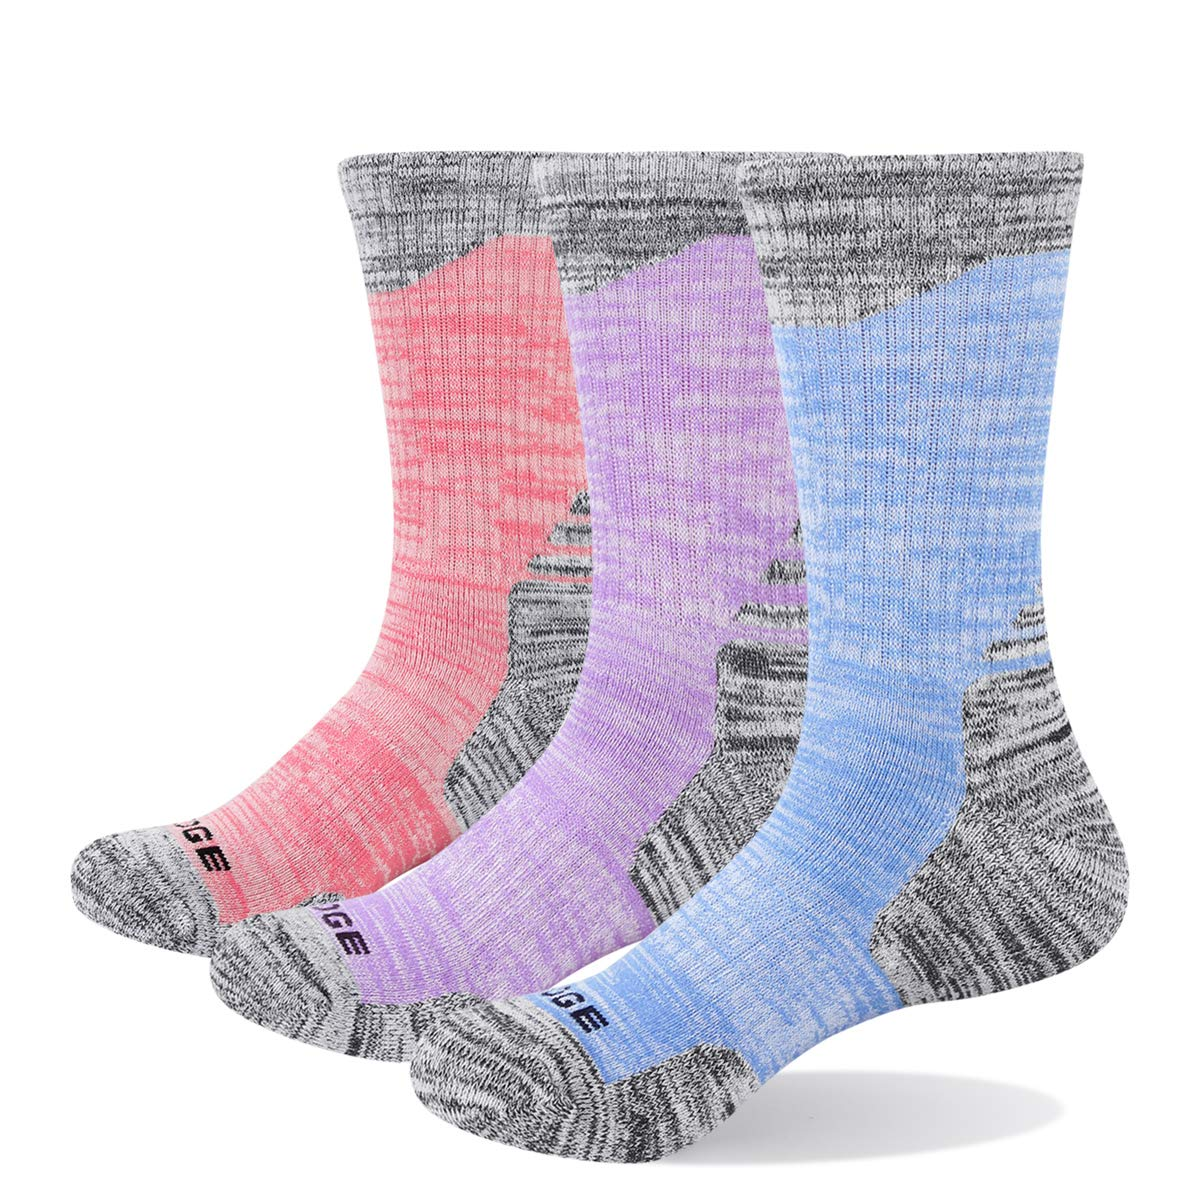 YUEDGE 3 Pairs Women's Cotton Cushion Crew Outdoor Sports Hiking Socks by YUEDGE